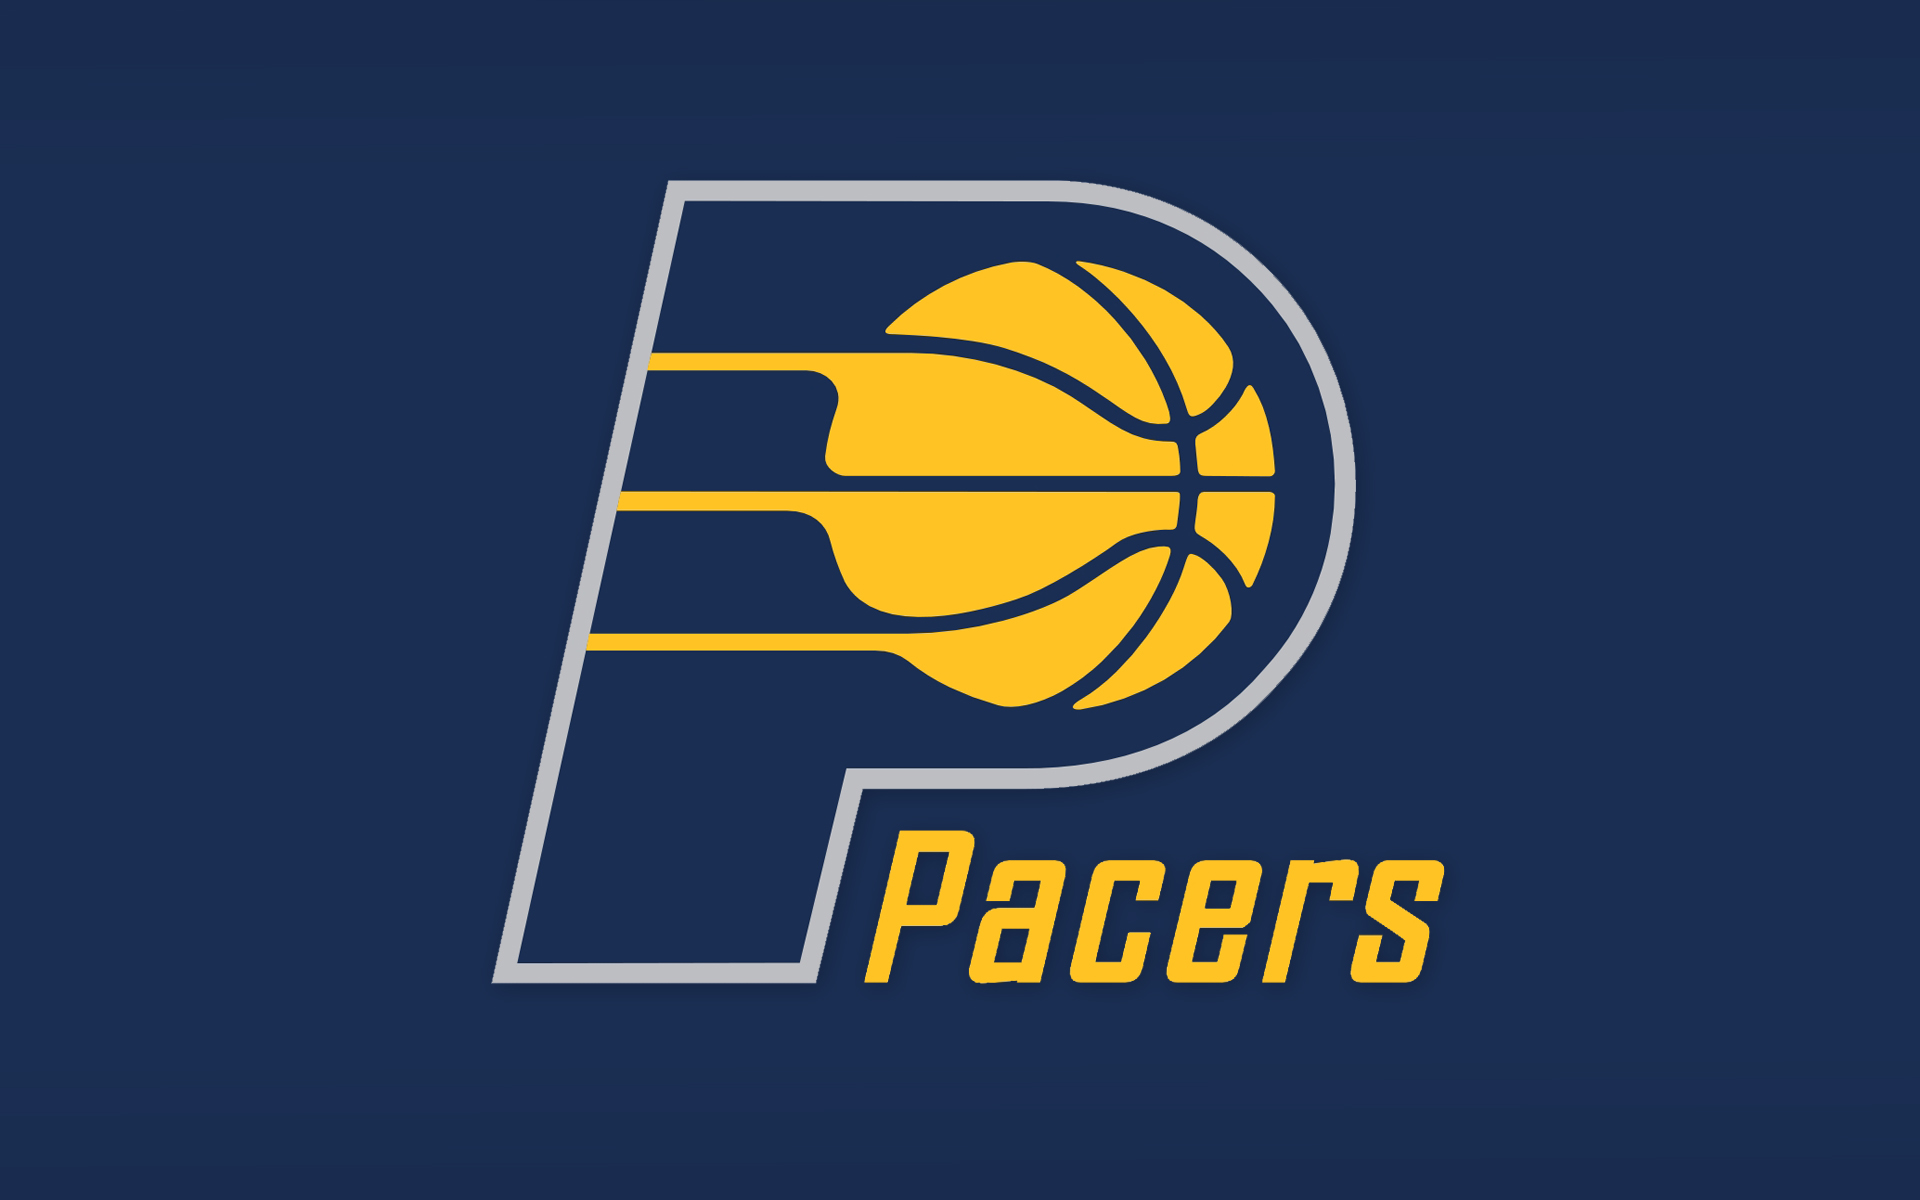 Pacers Logo Wallpaper